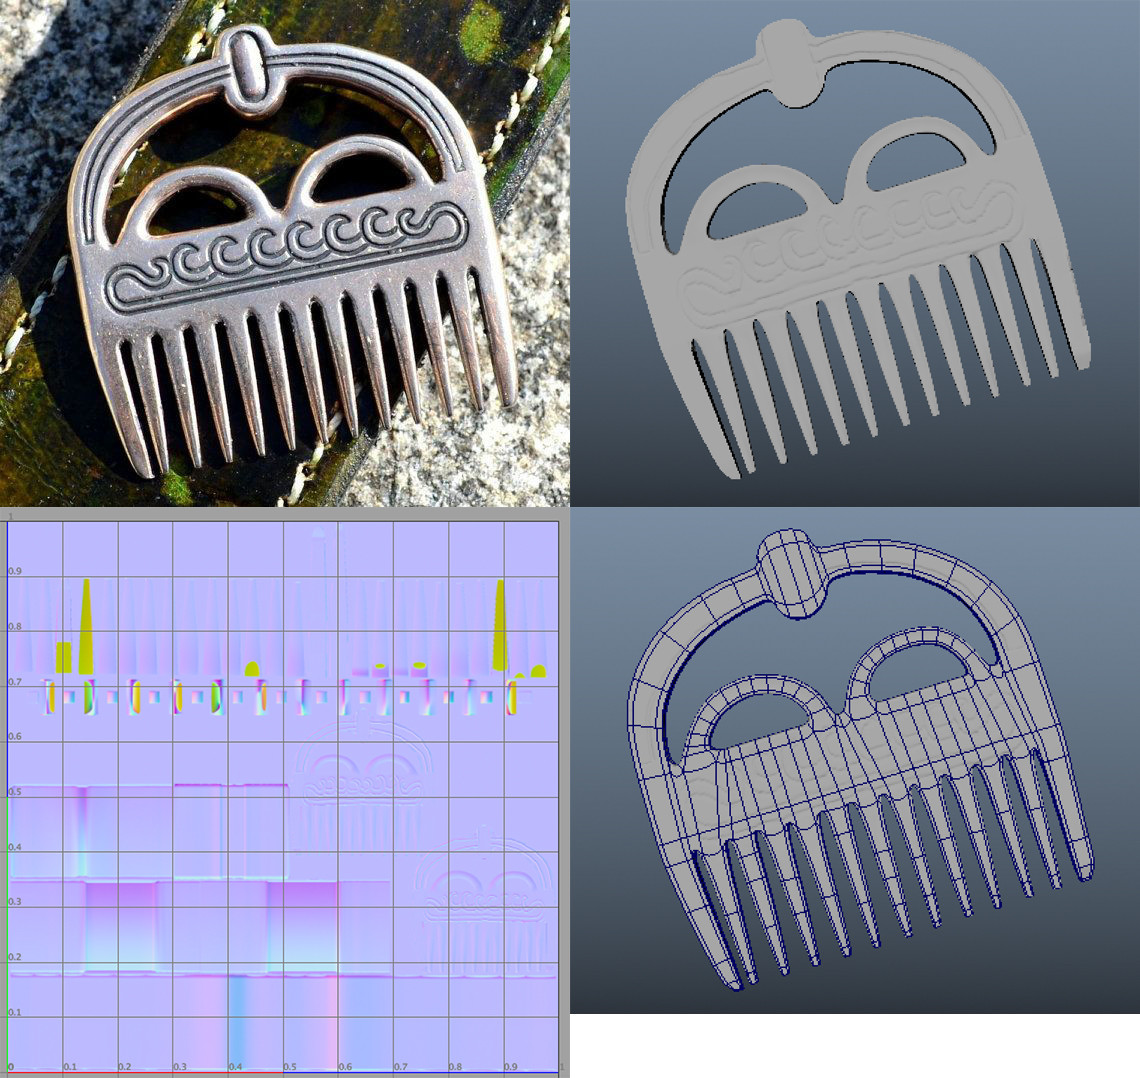 'Comb' with UV and detail